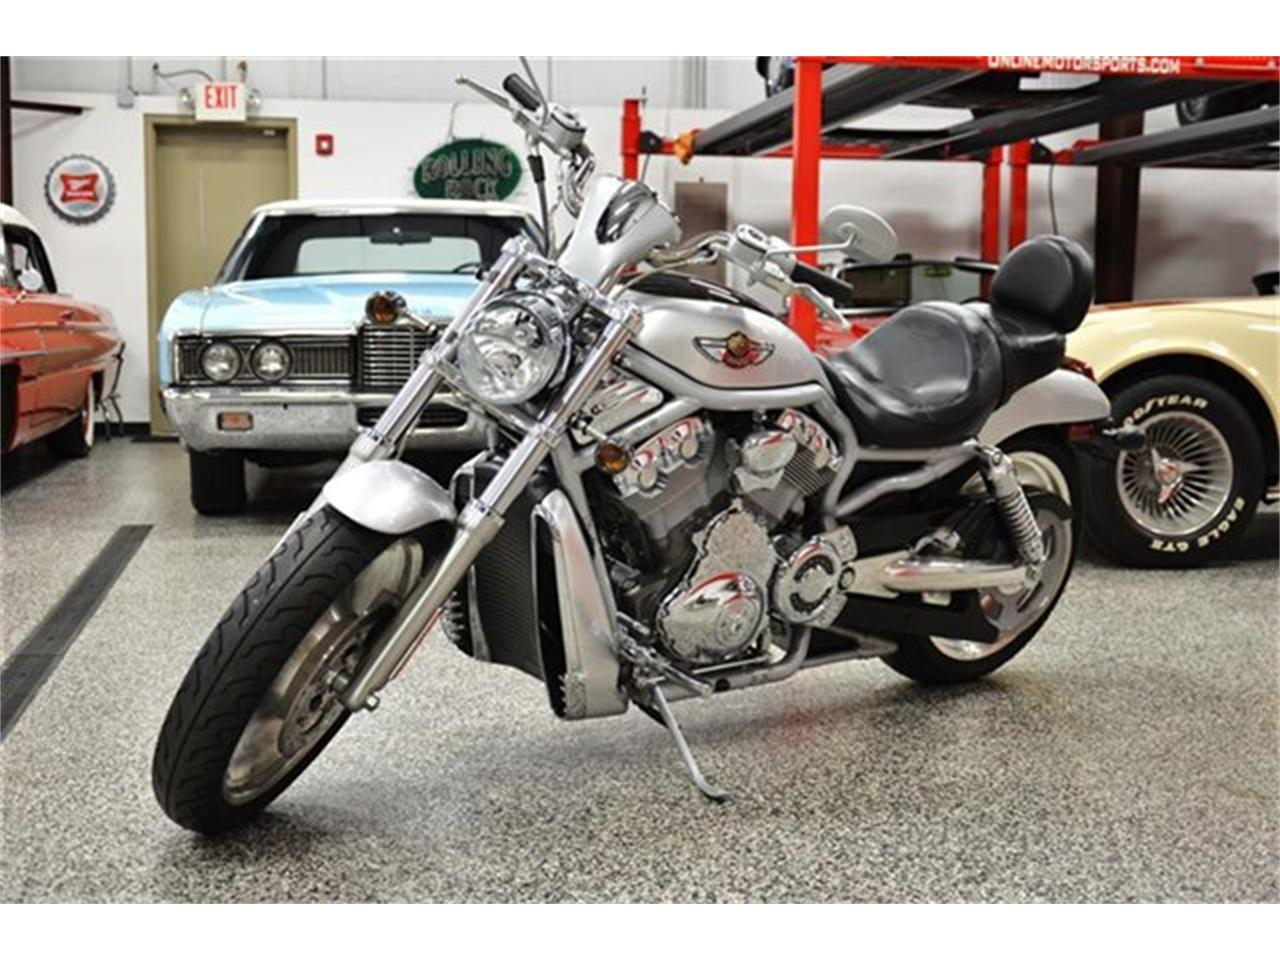 2003 Harley-Davidson VRSC for sale in Plainfield, IL – photo 15